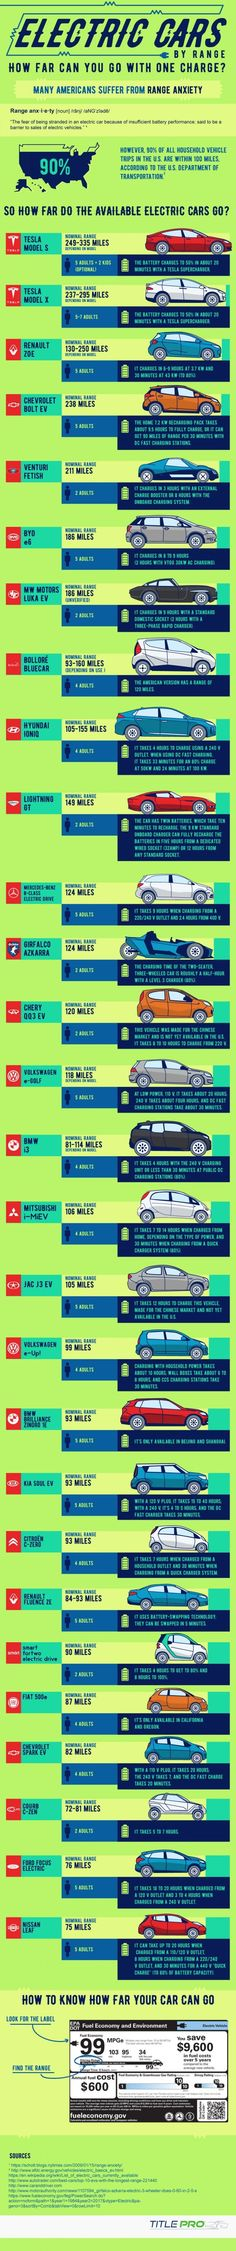 Infographic: Electric Cars by Range